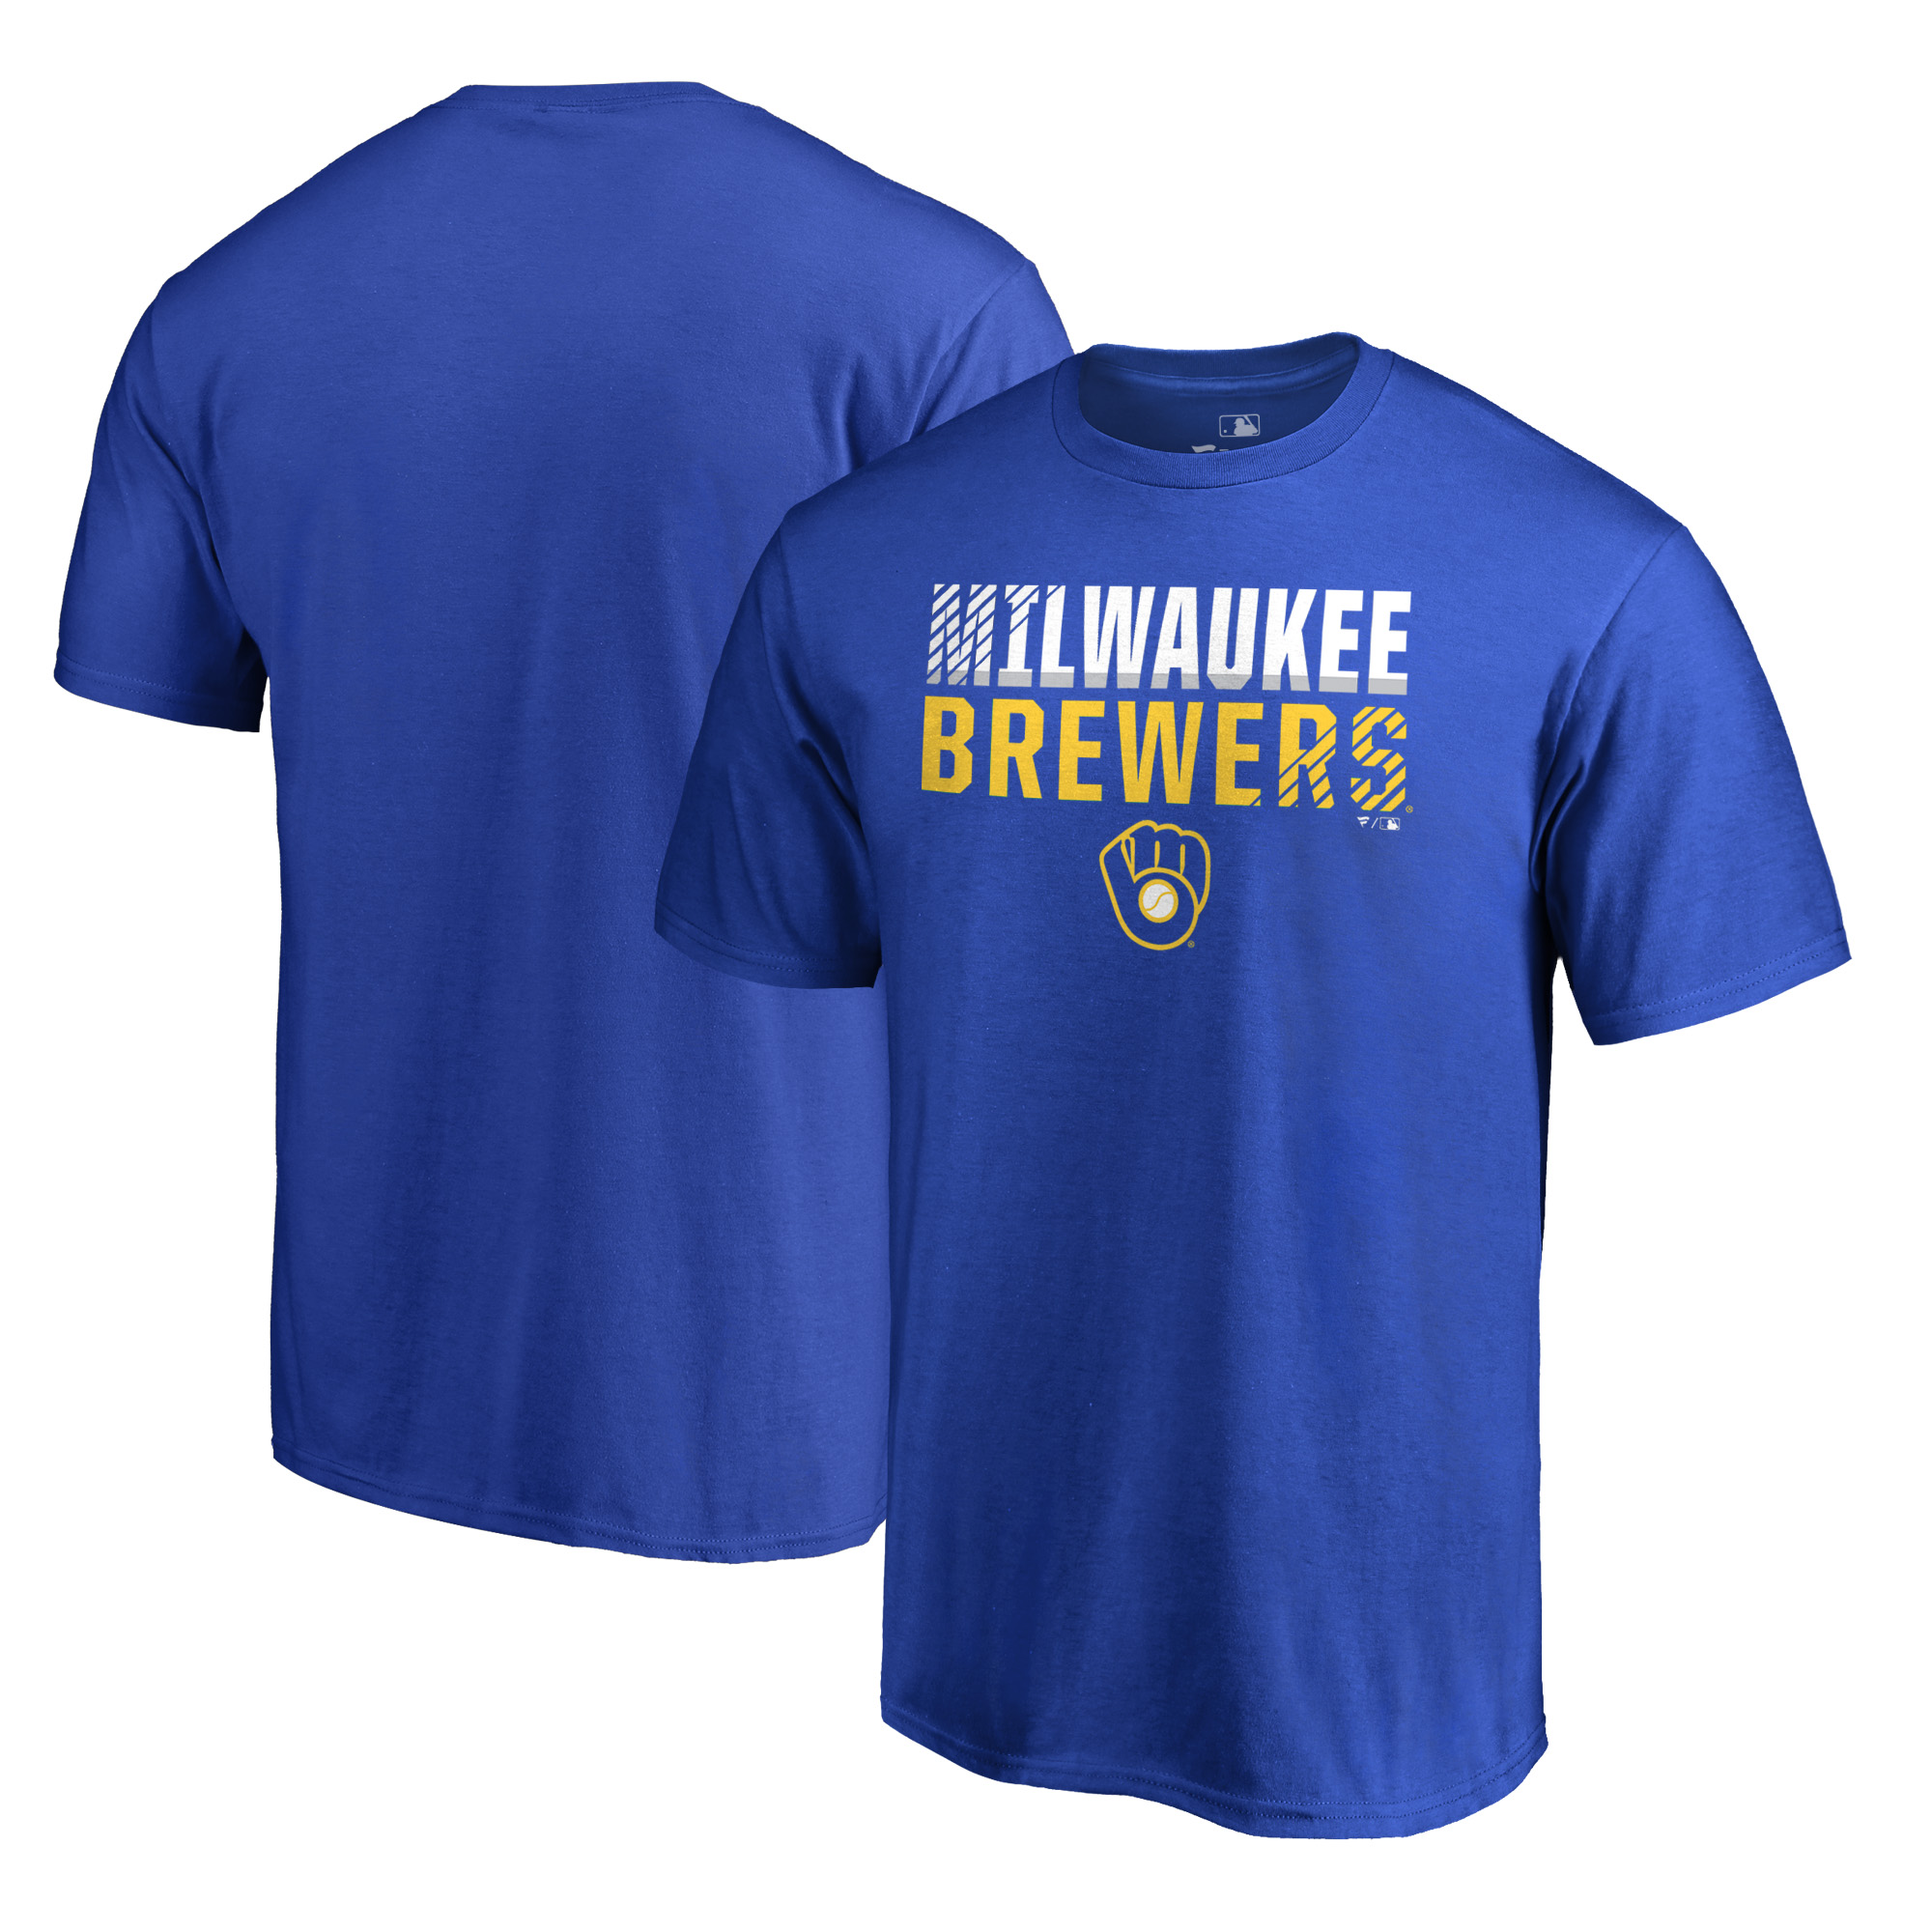 Milwaukee Brewers Fanatics Branded Big & Tall Fade Out T-Shirt - Royal